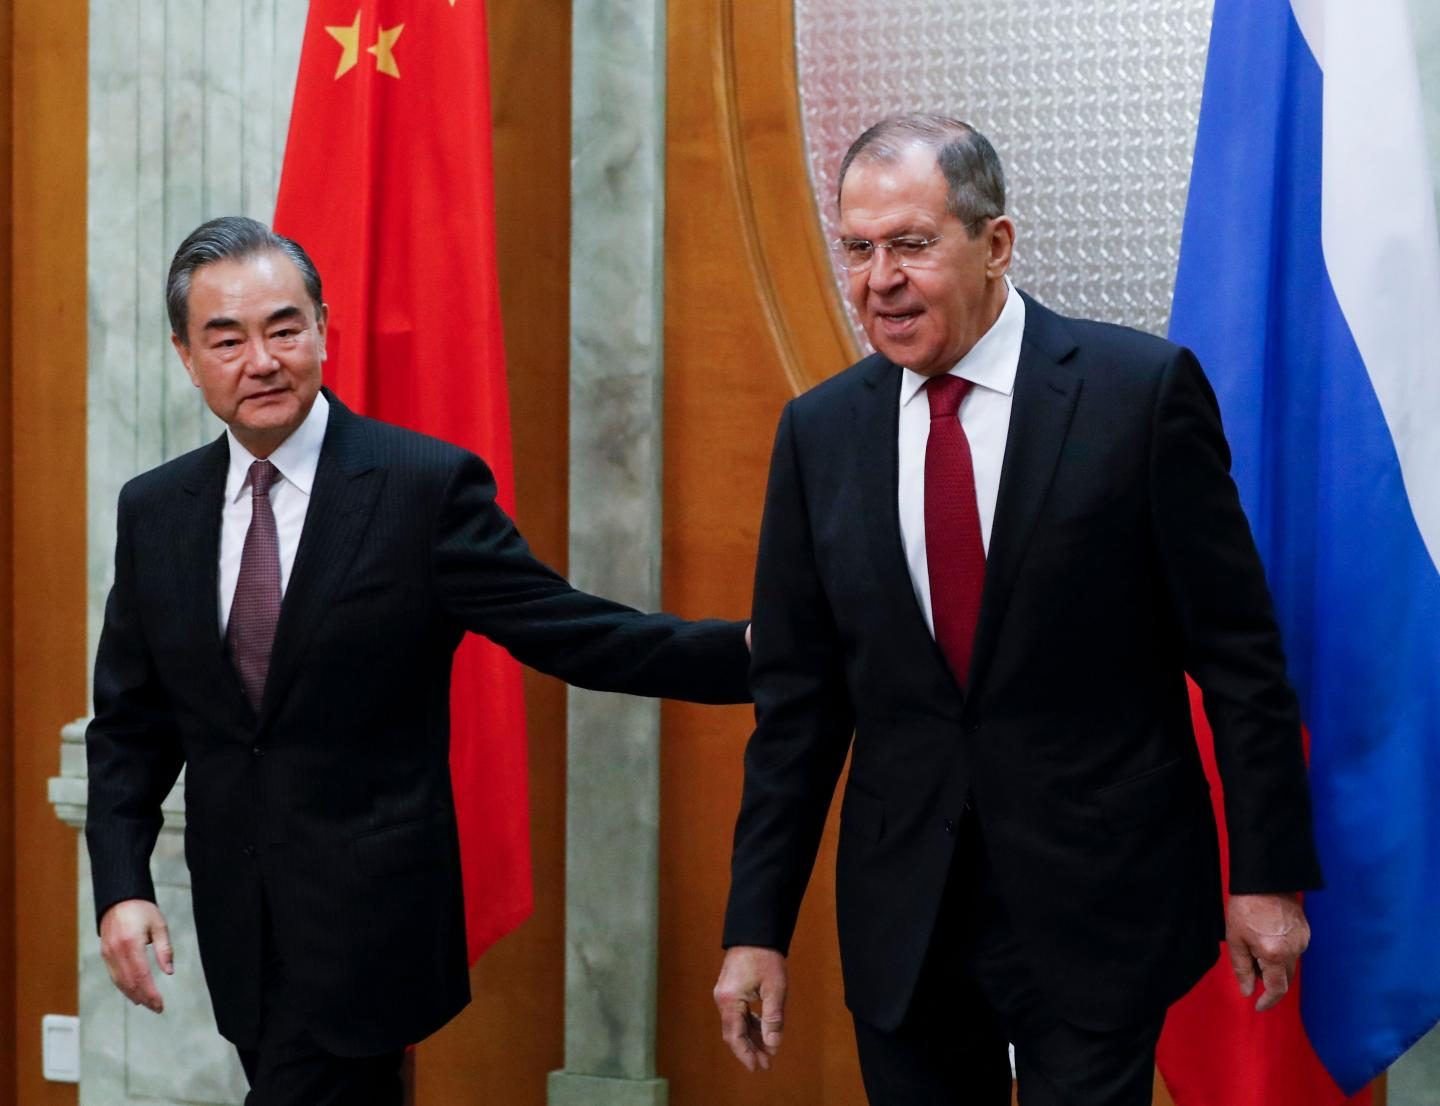 gettyimages 1143392571 - China 'Will Never' Join Arms Control Deal with the U.S. and Russia